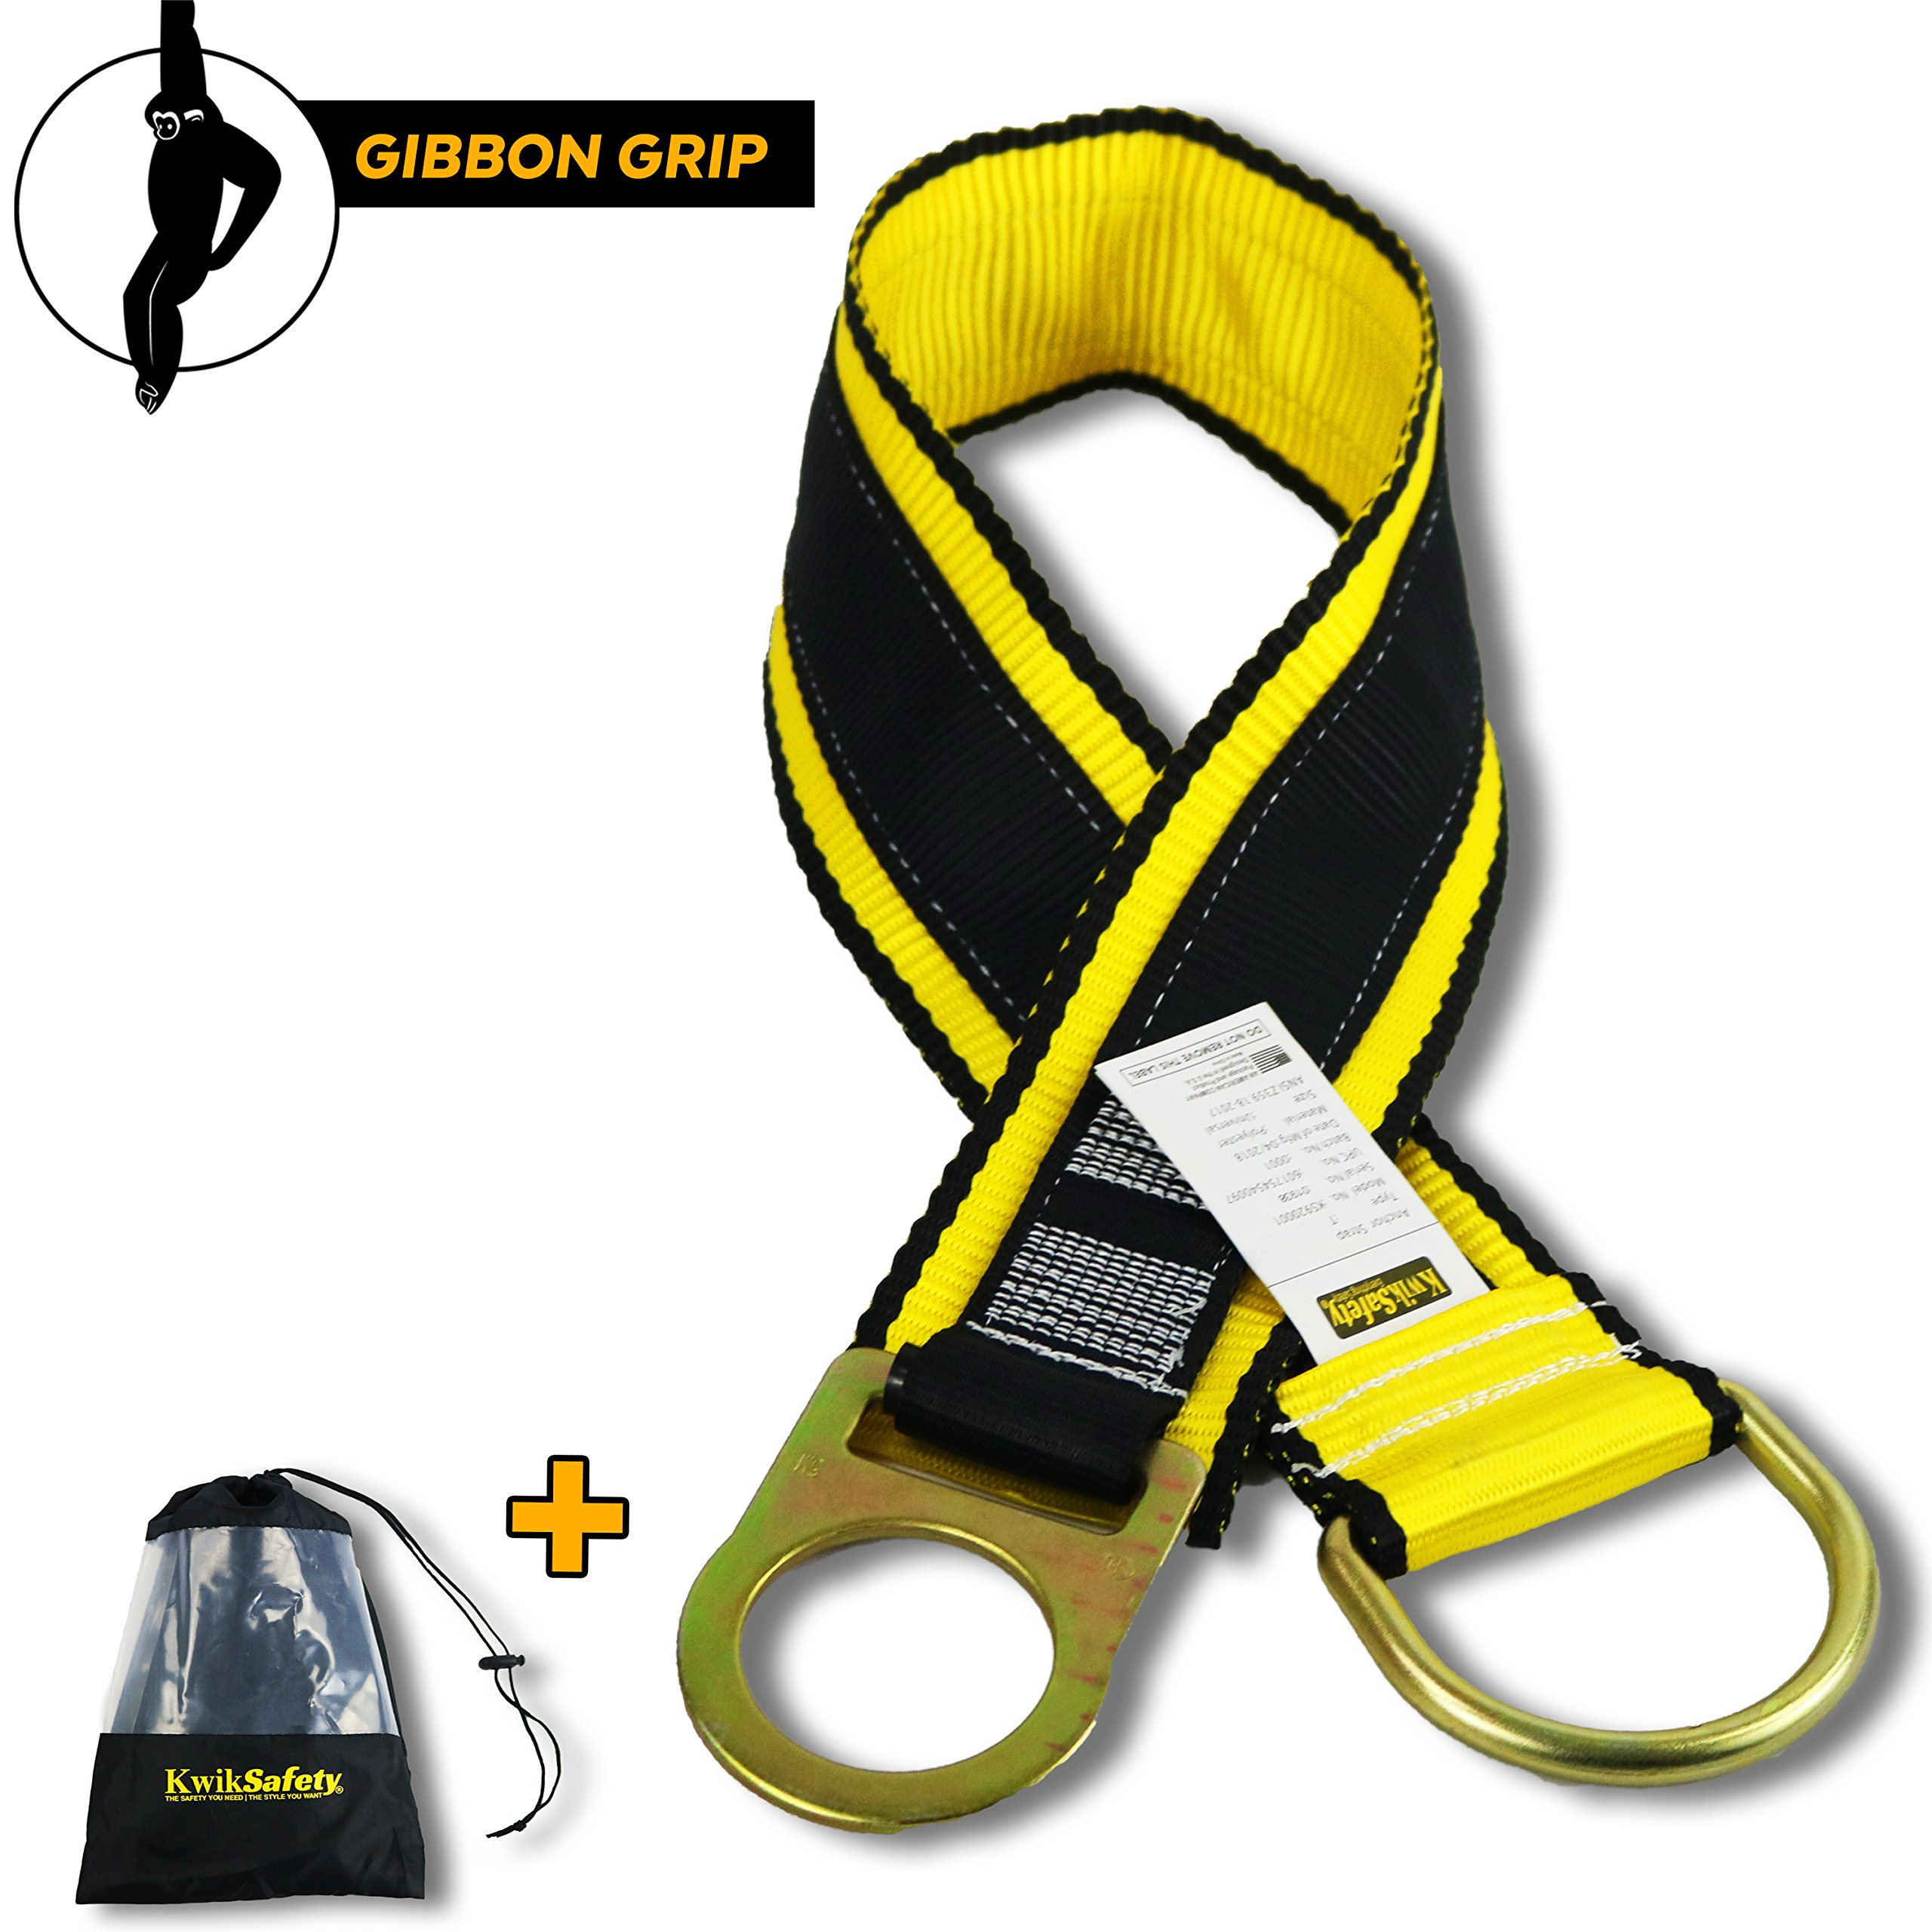 KwikSafety (GIBBON GRIP) 3 ft Anchor Choker Cross Arm Strap Fall Arrest ANSI Pass Thru Tie Off Safety Sling Anchorage Connector Fall Protection Tool Roofing Harness Lanyard SRL Construction PPE Kit